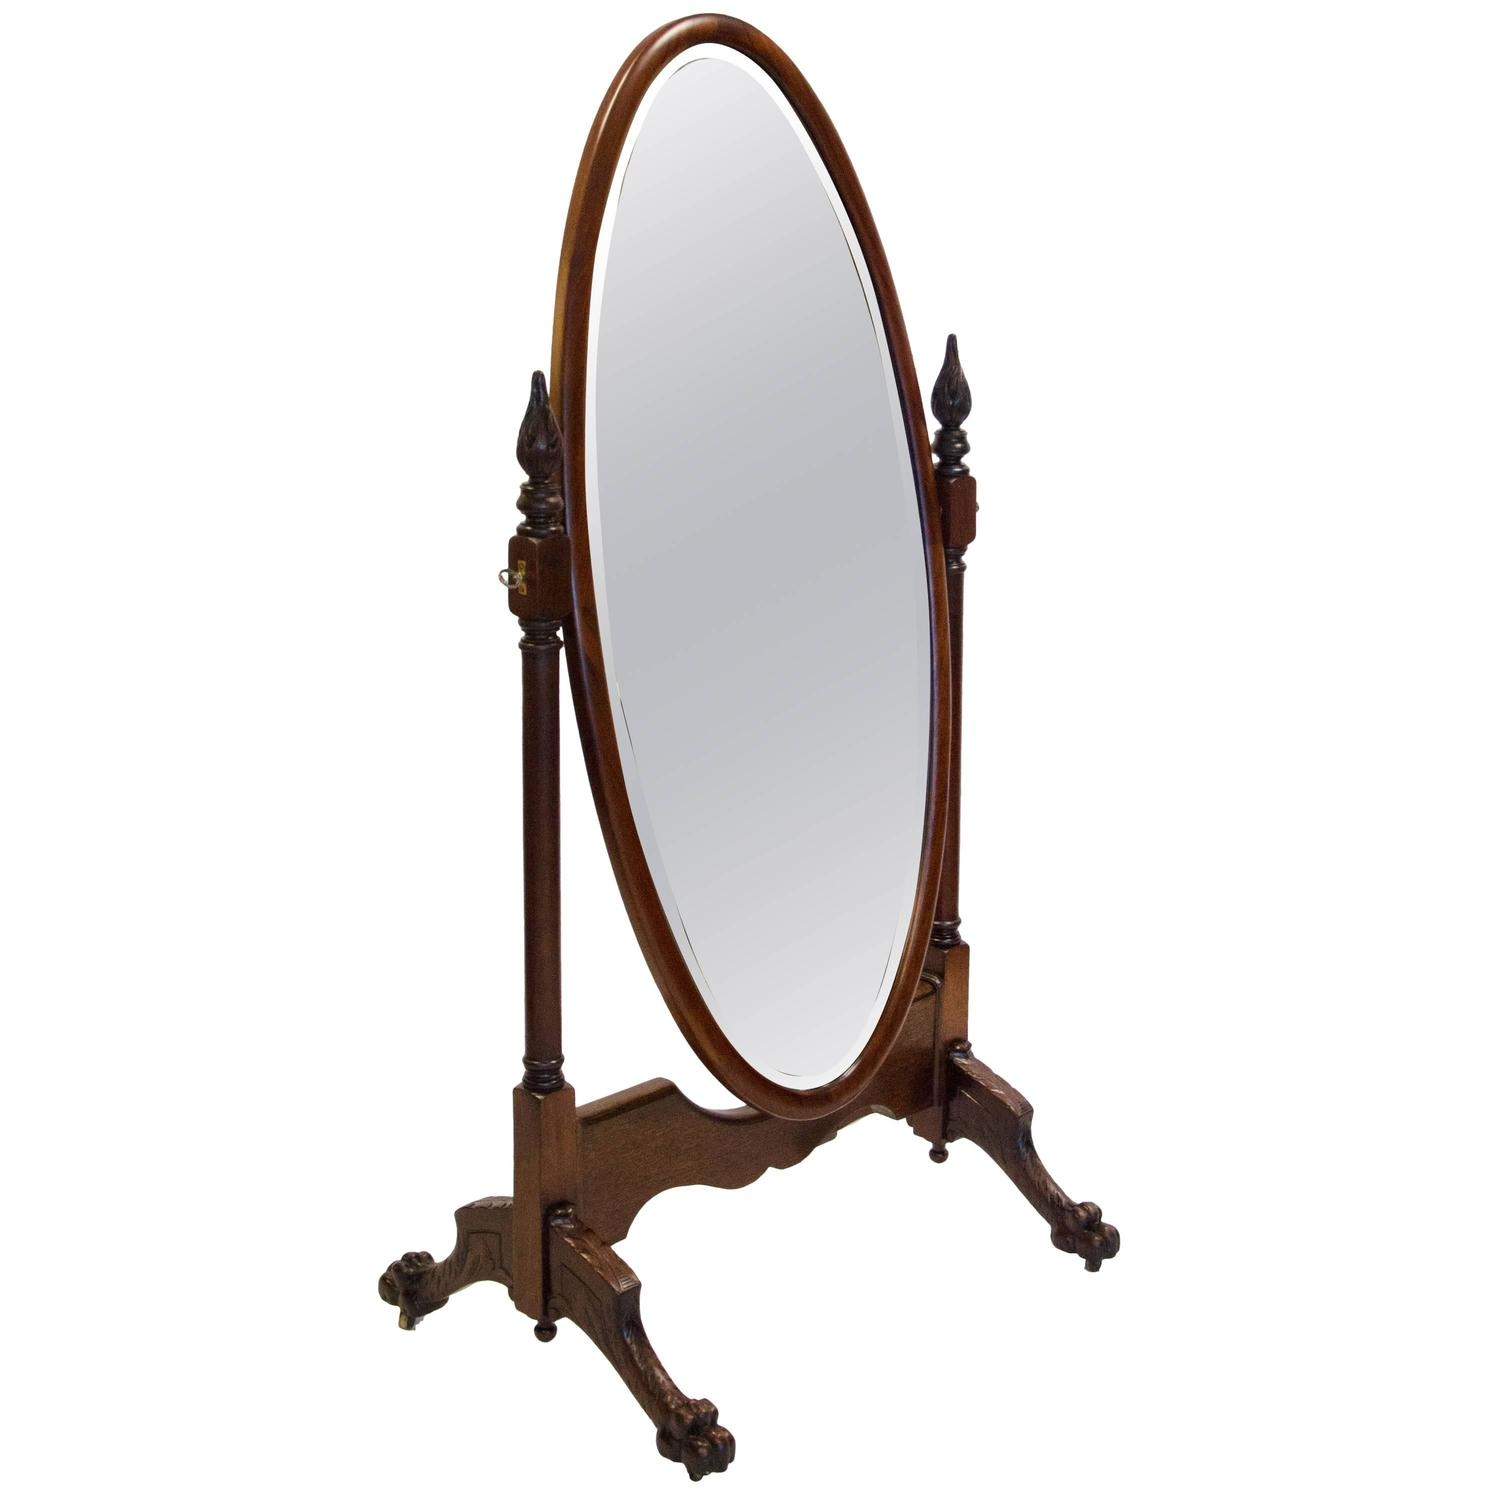 Mahogany Floor Mirrors And Full Length Mirrors 50 For Sale At With Regard To Antique Full Length Mirror (Image 12 of 15)